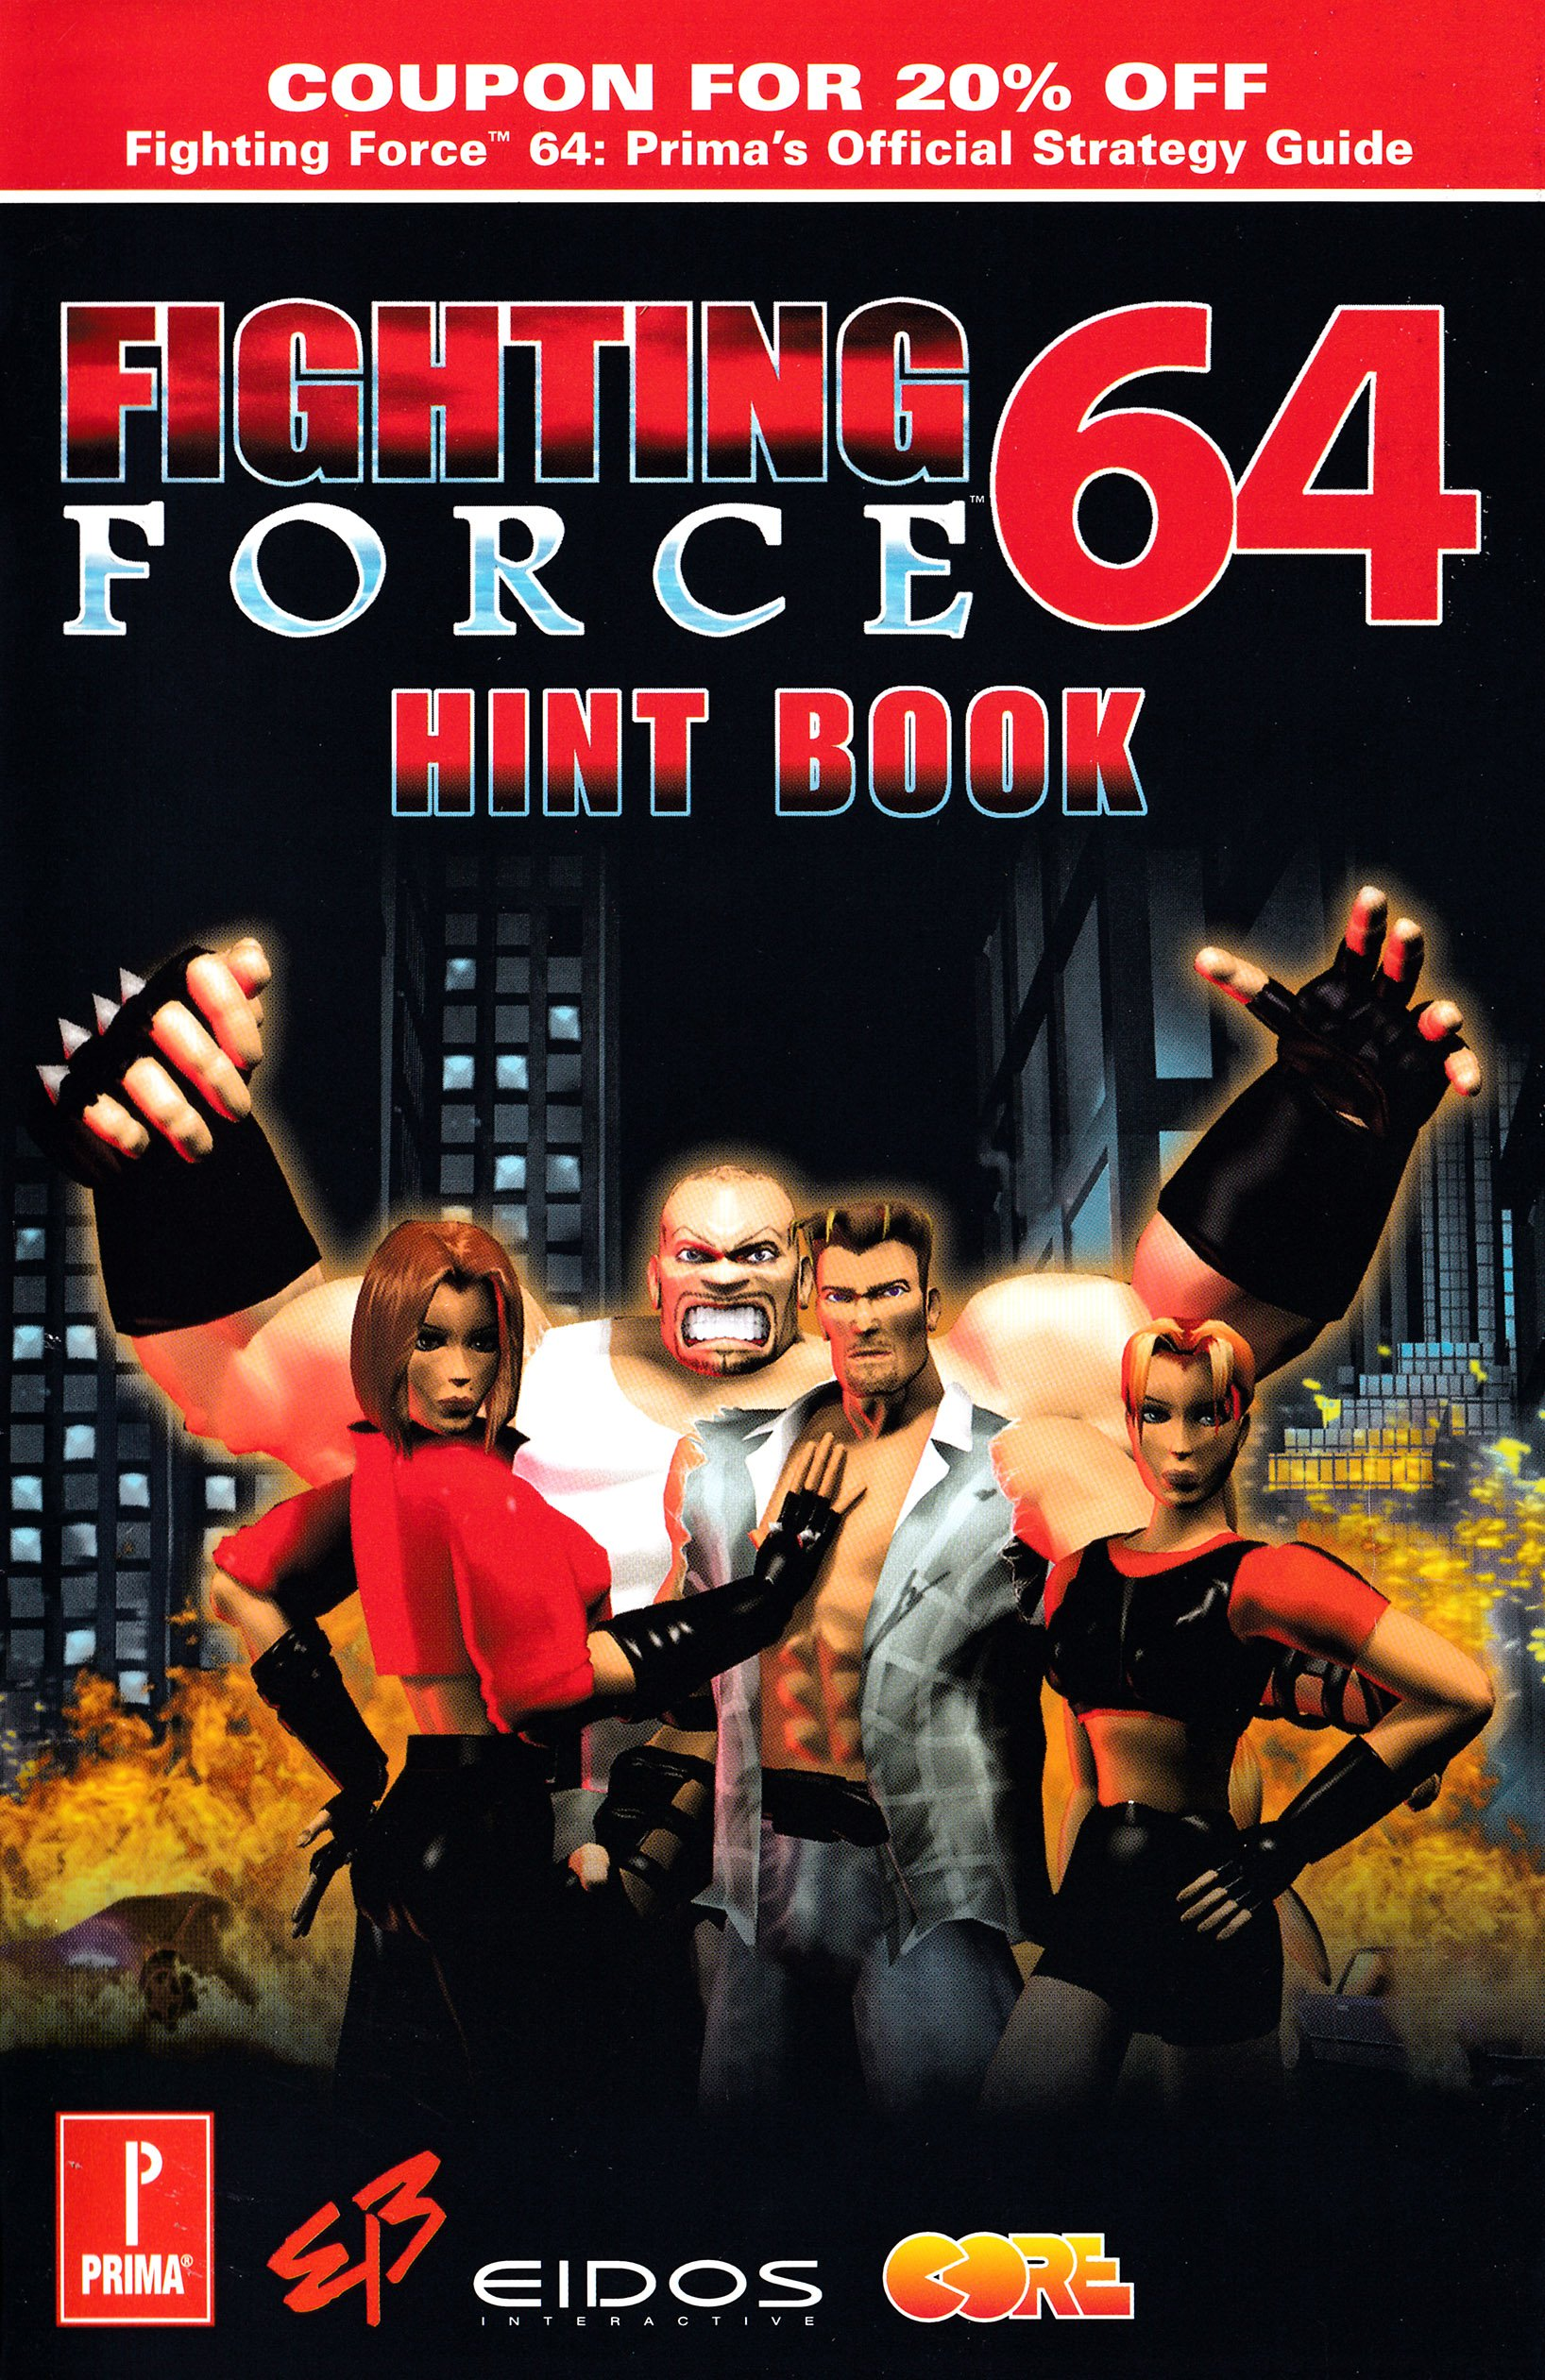 Fighting Force 64 Hint Book